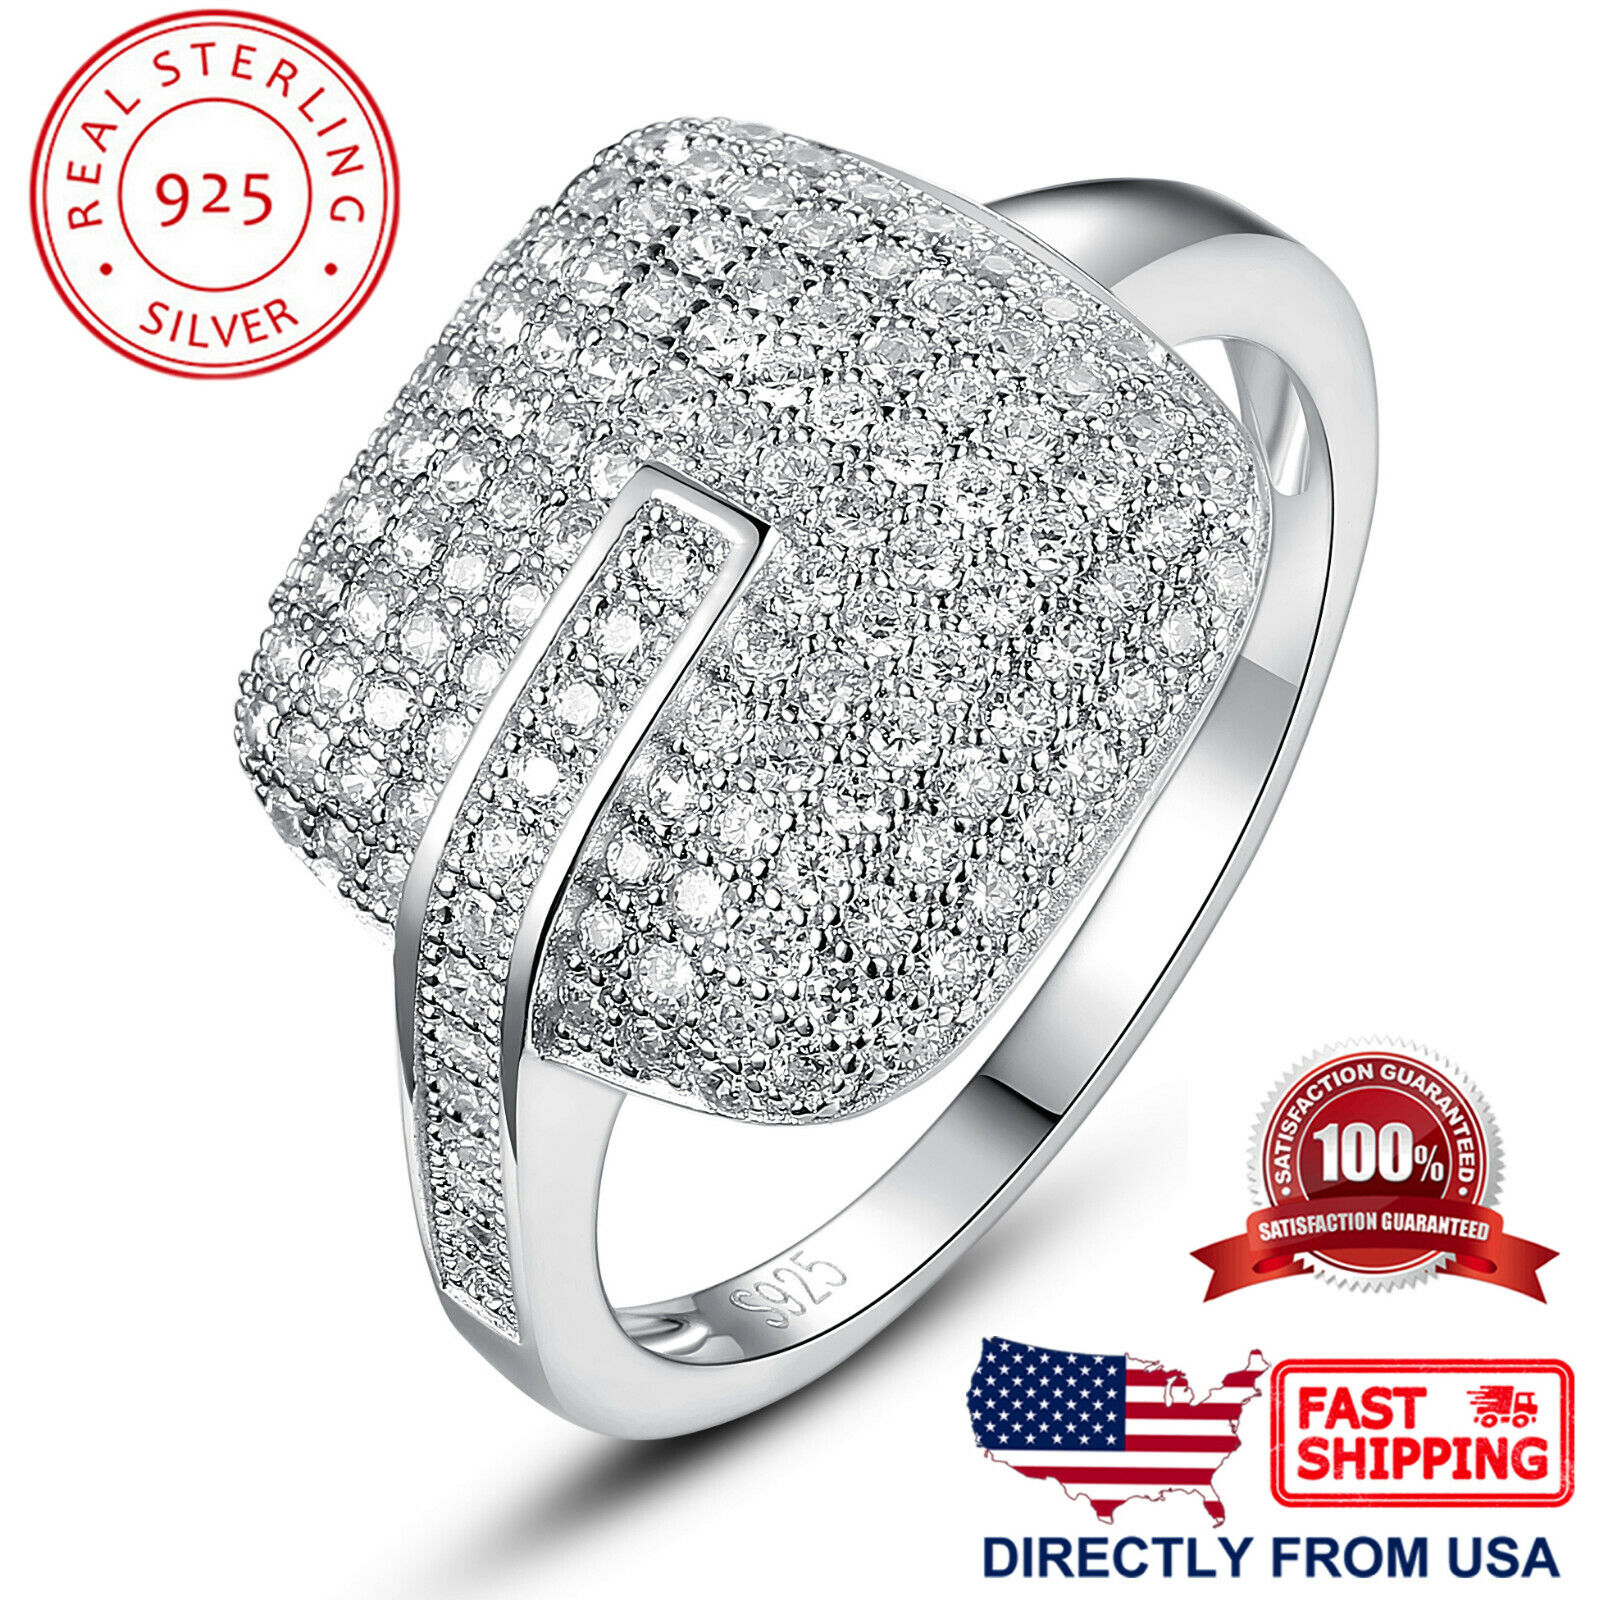 Women's Sterling Silver Square Cushion Micro Pave Cubic Zirconia Cocktail Ring Fine Jewelry